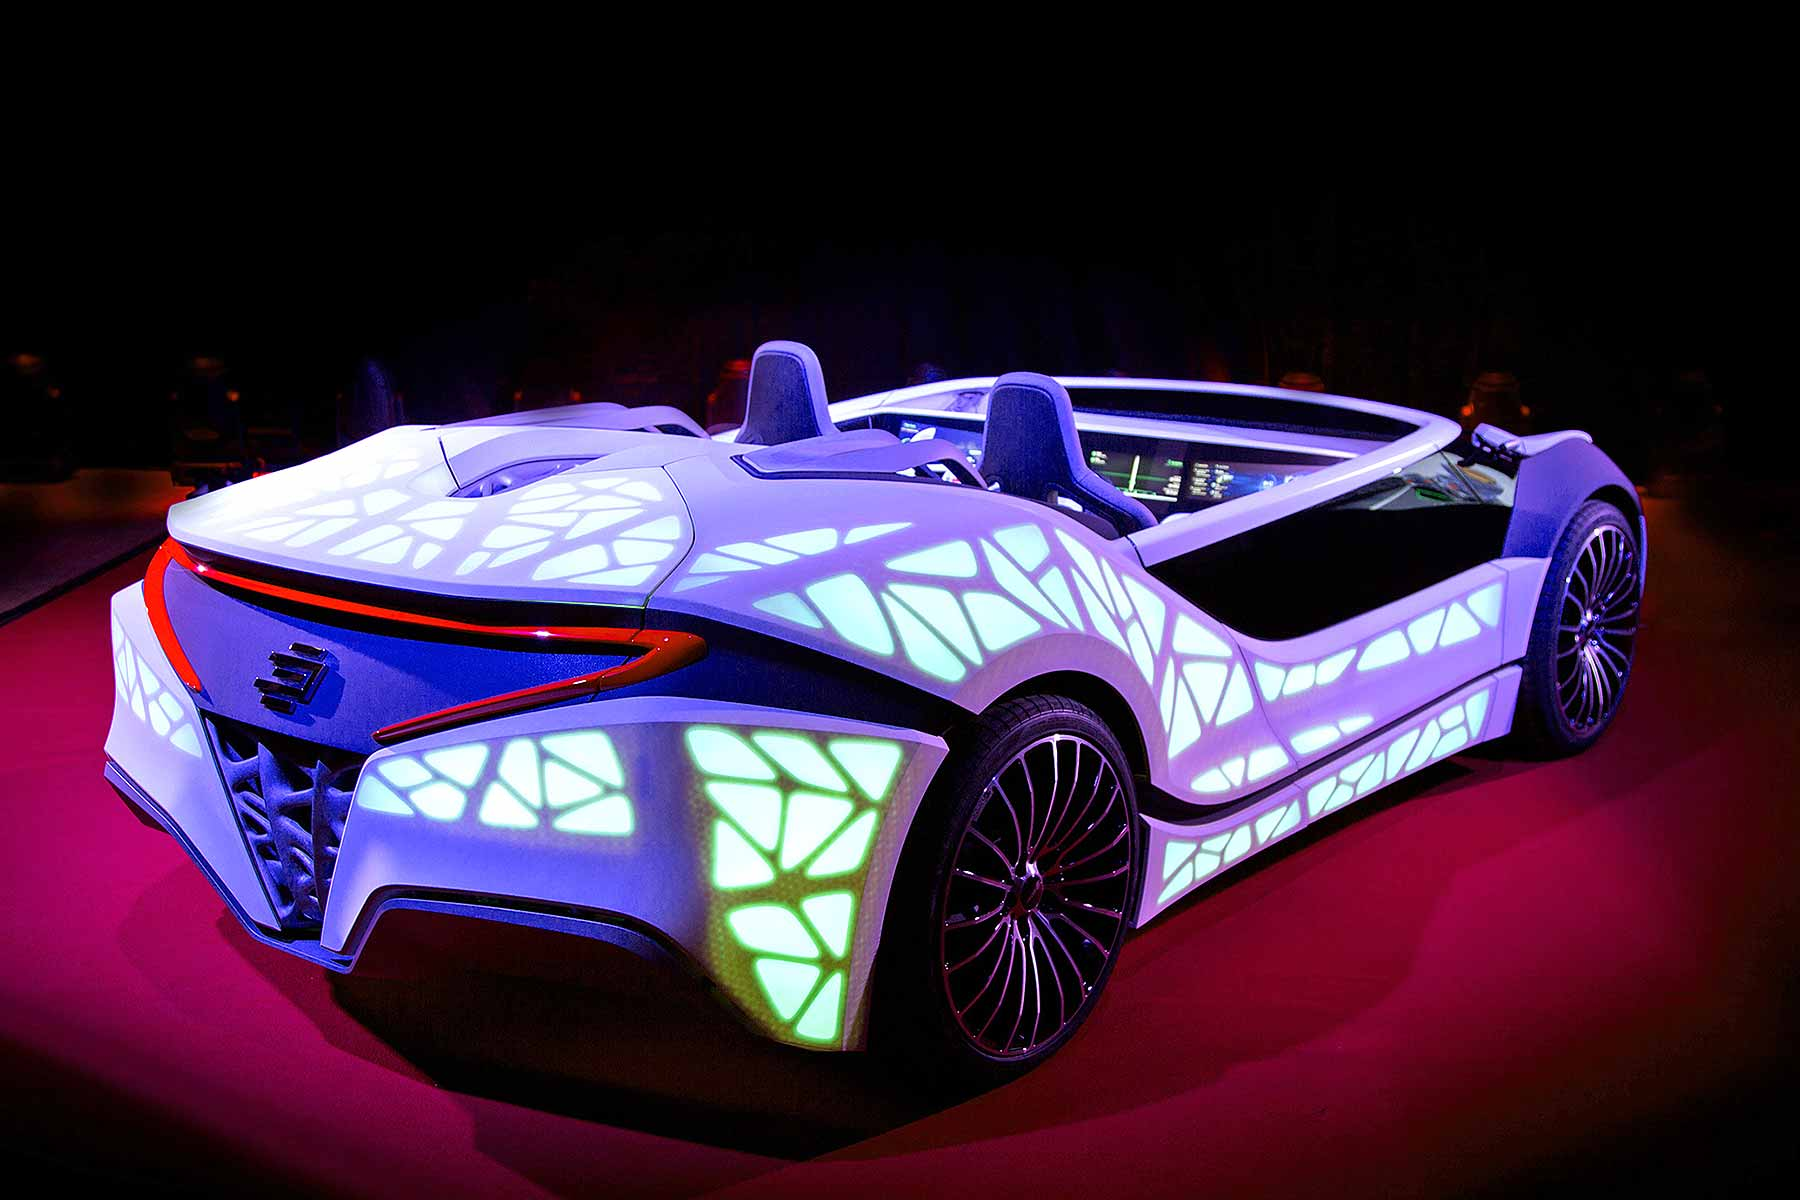 ces cars automated yes bosch concept research january comments